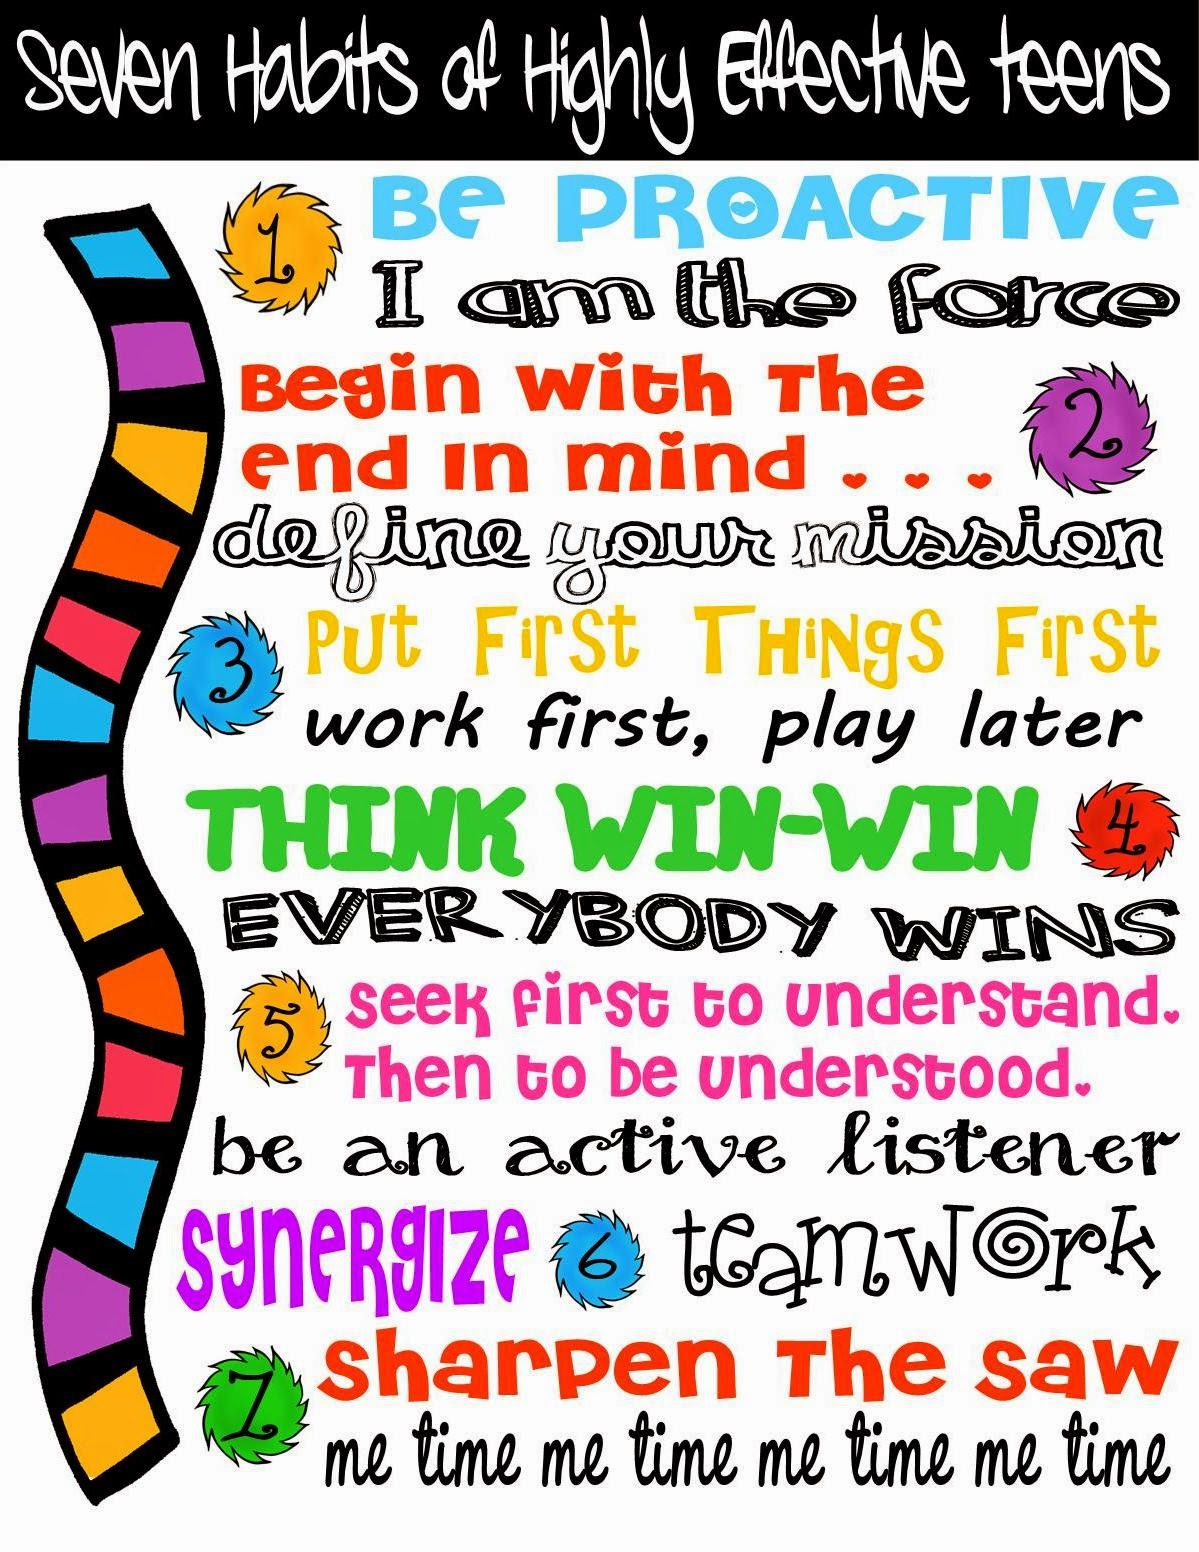 Brand New 7 Habits Of Highly Effective People Poster Jw49